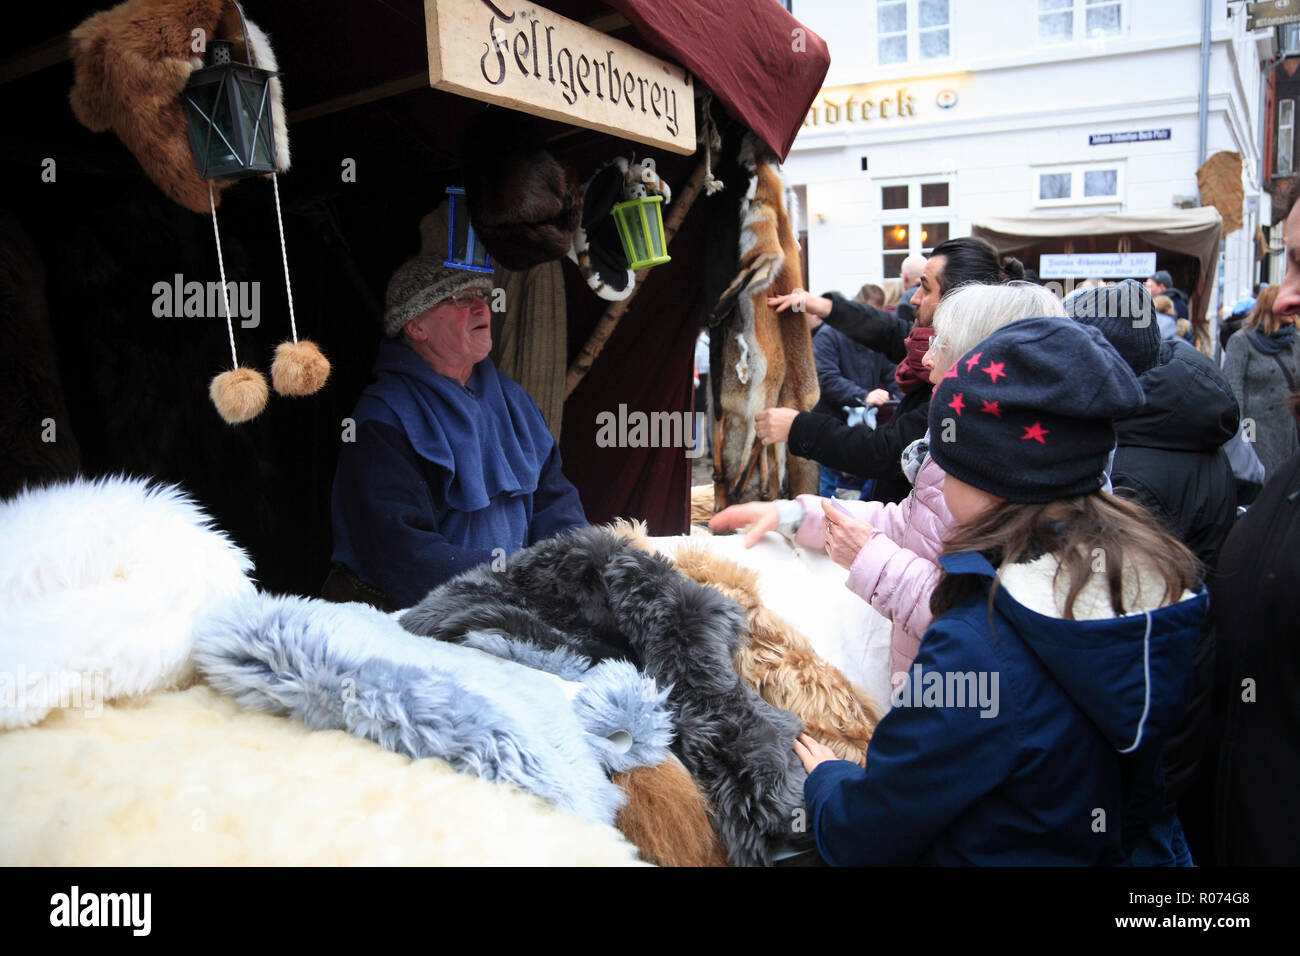 Christmas market in the old town of Lüneburg, Lueneburg, Weihnachtsmarkt in der Altstadt, Verkaufsstand, Lower Saxony, Germany, Europe Stock Photo